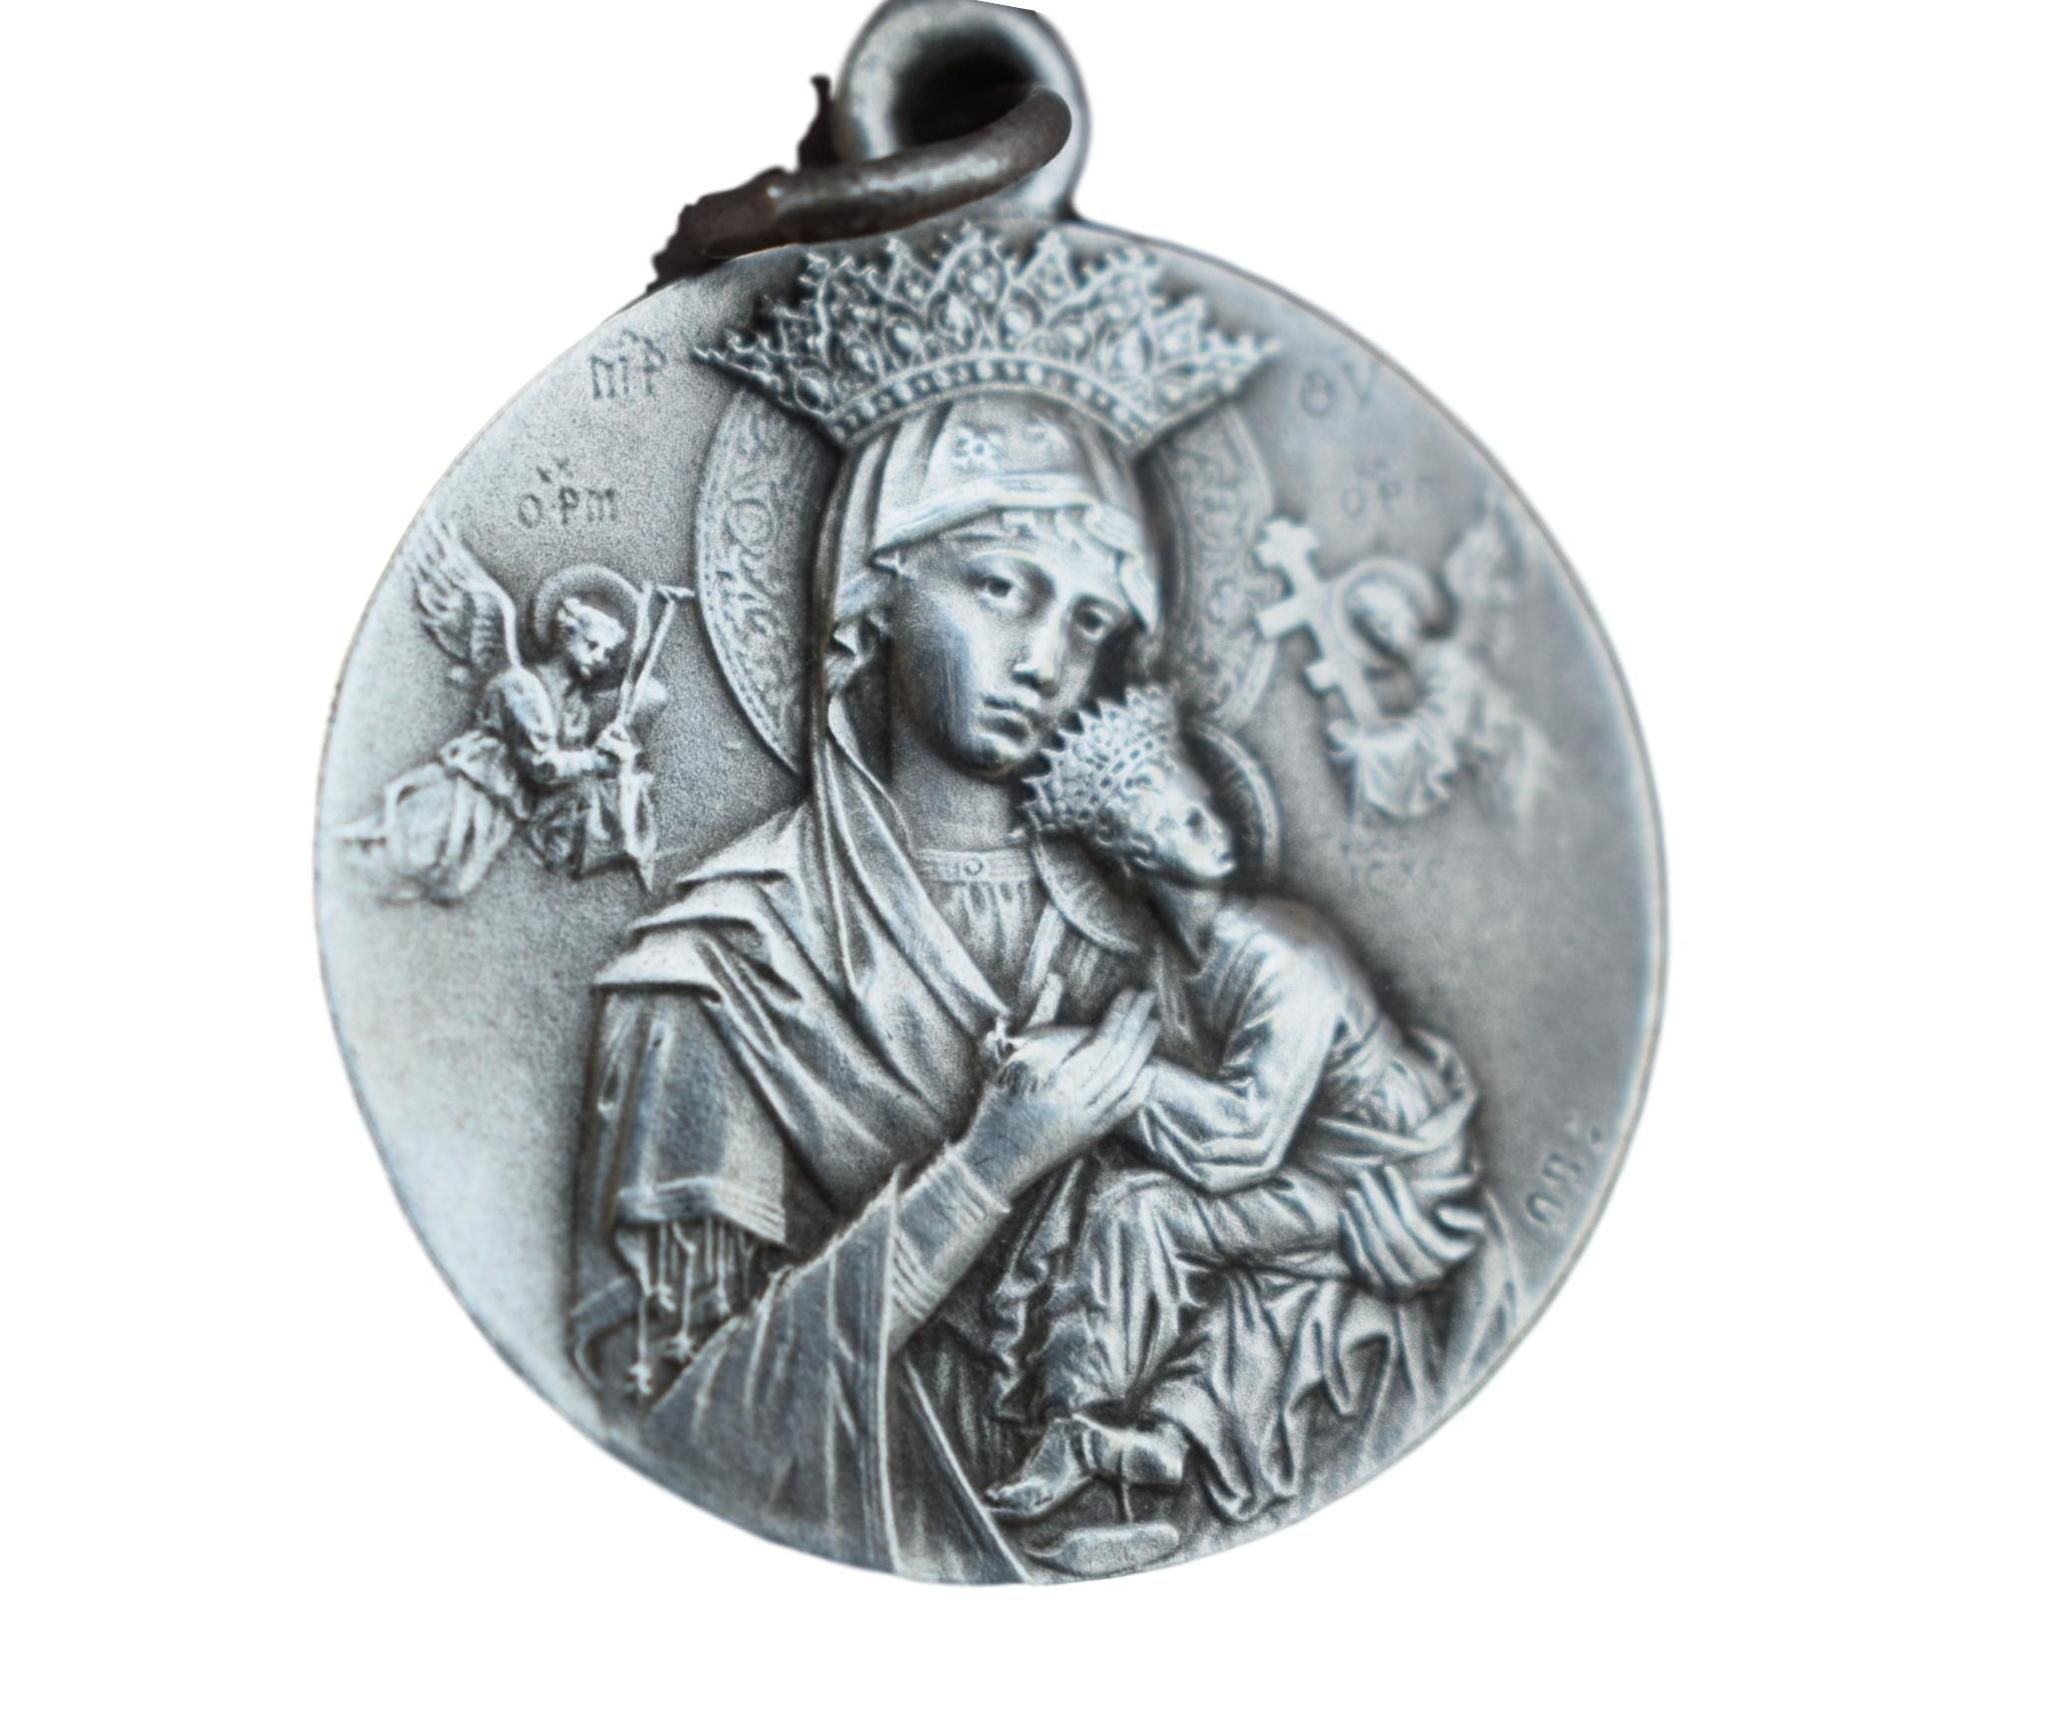 Holy mary our lady of perpetual help and saint gerard medal french holy mary our lady of perpetual help and saint gerard medal french vintage silver st aloadofball Image collections